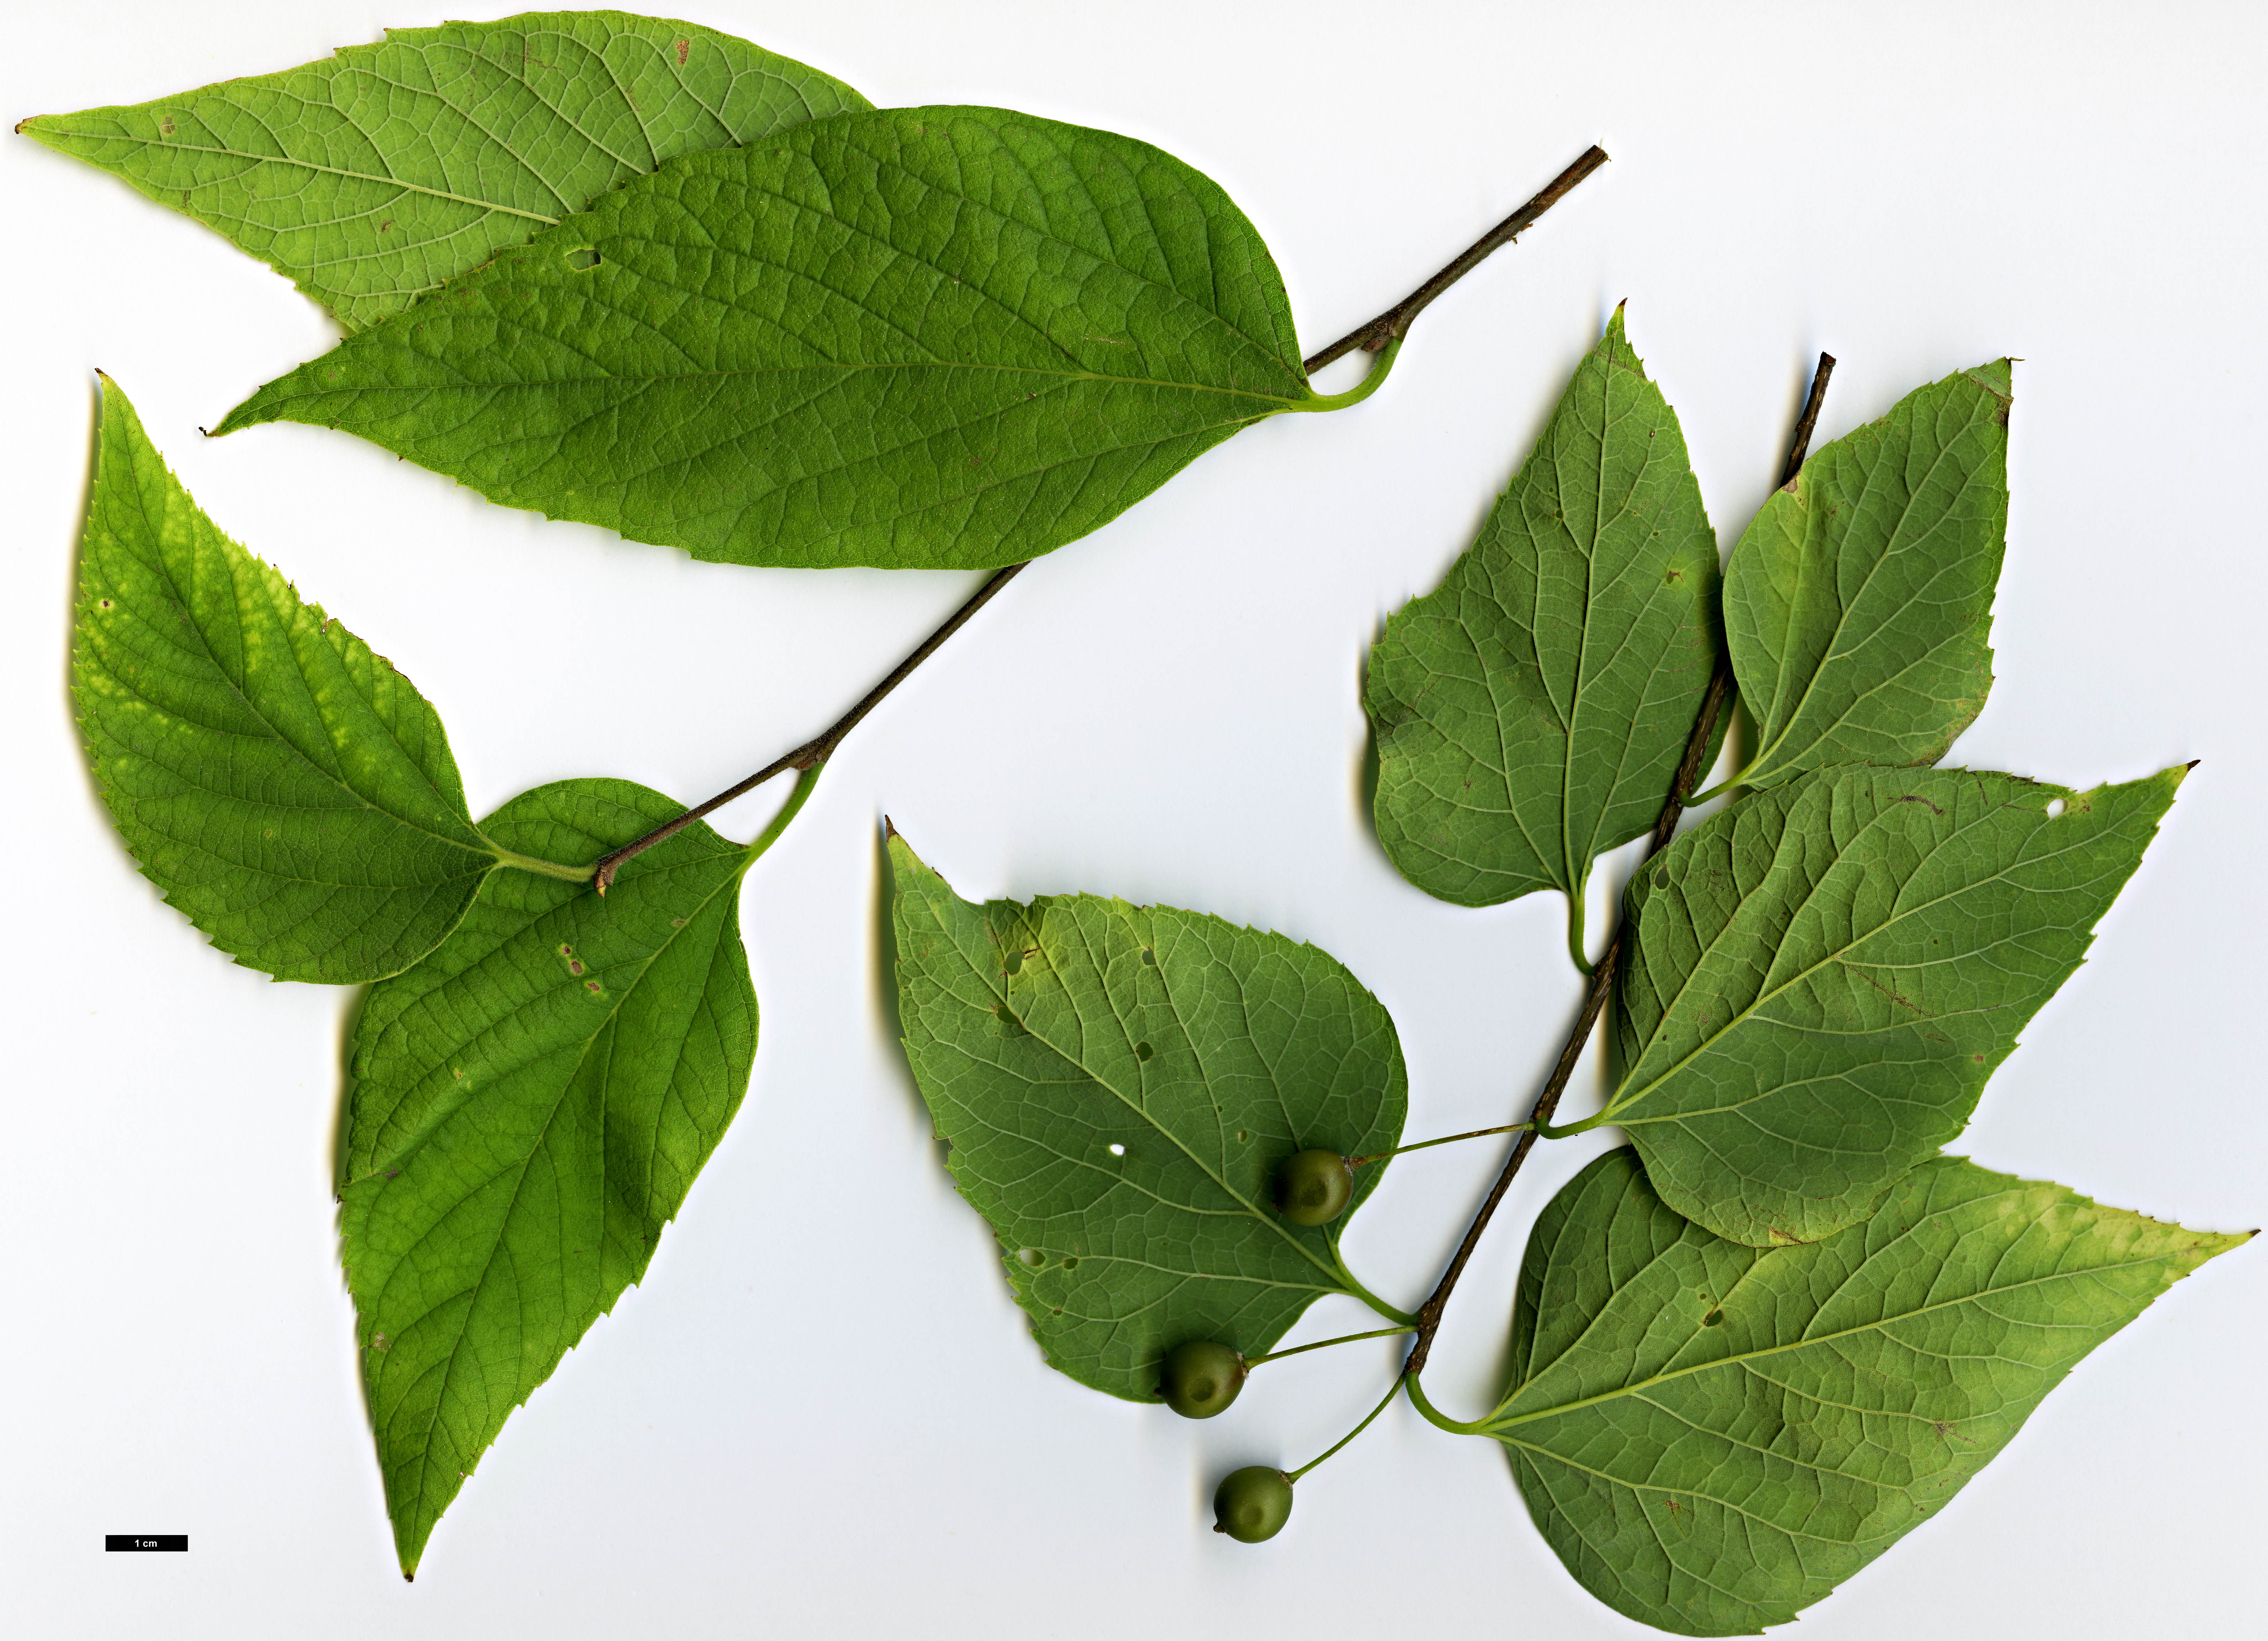 Family Cannabaceae Genus Celtis Specy occidentalis